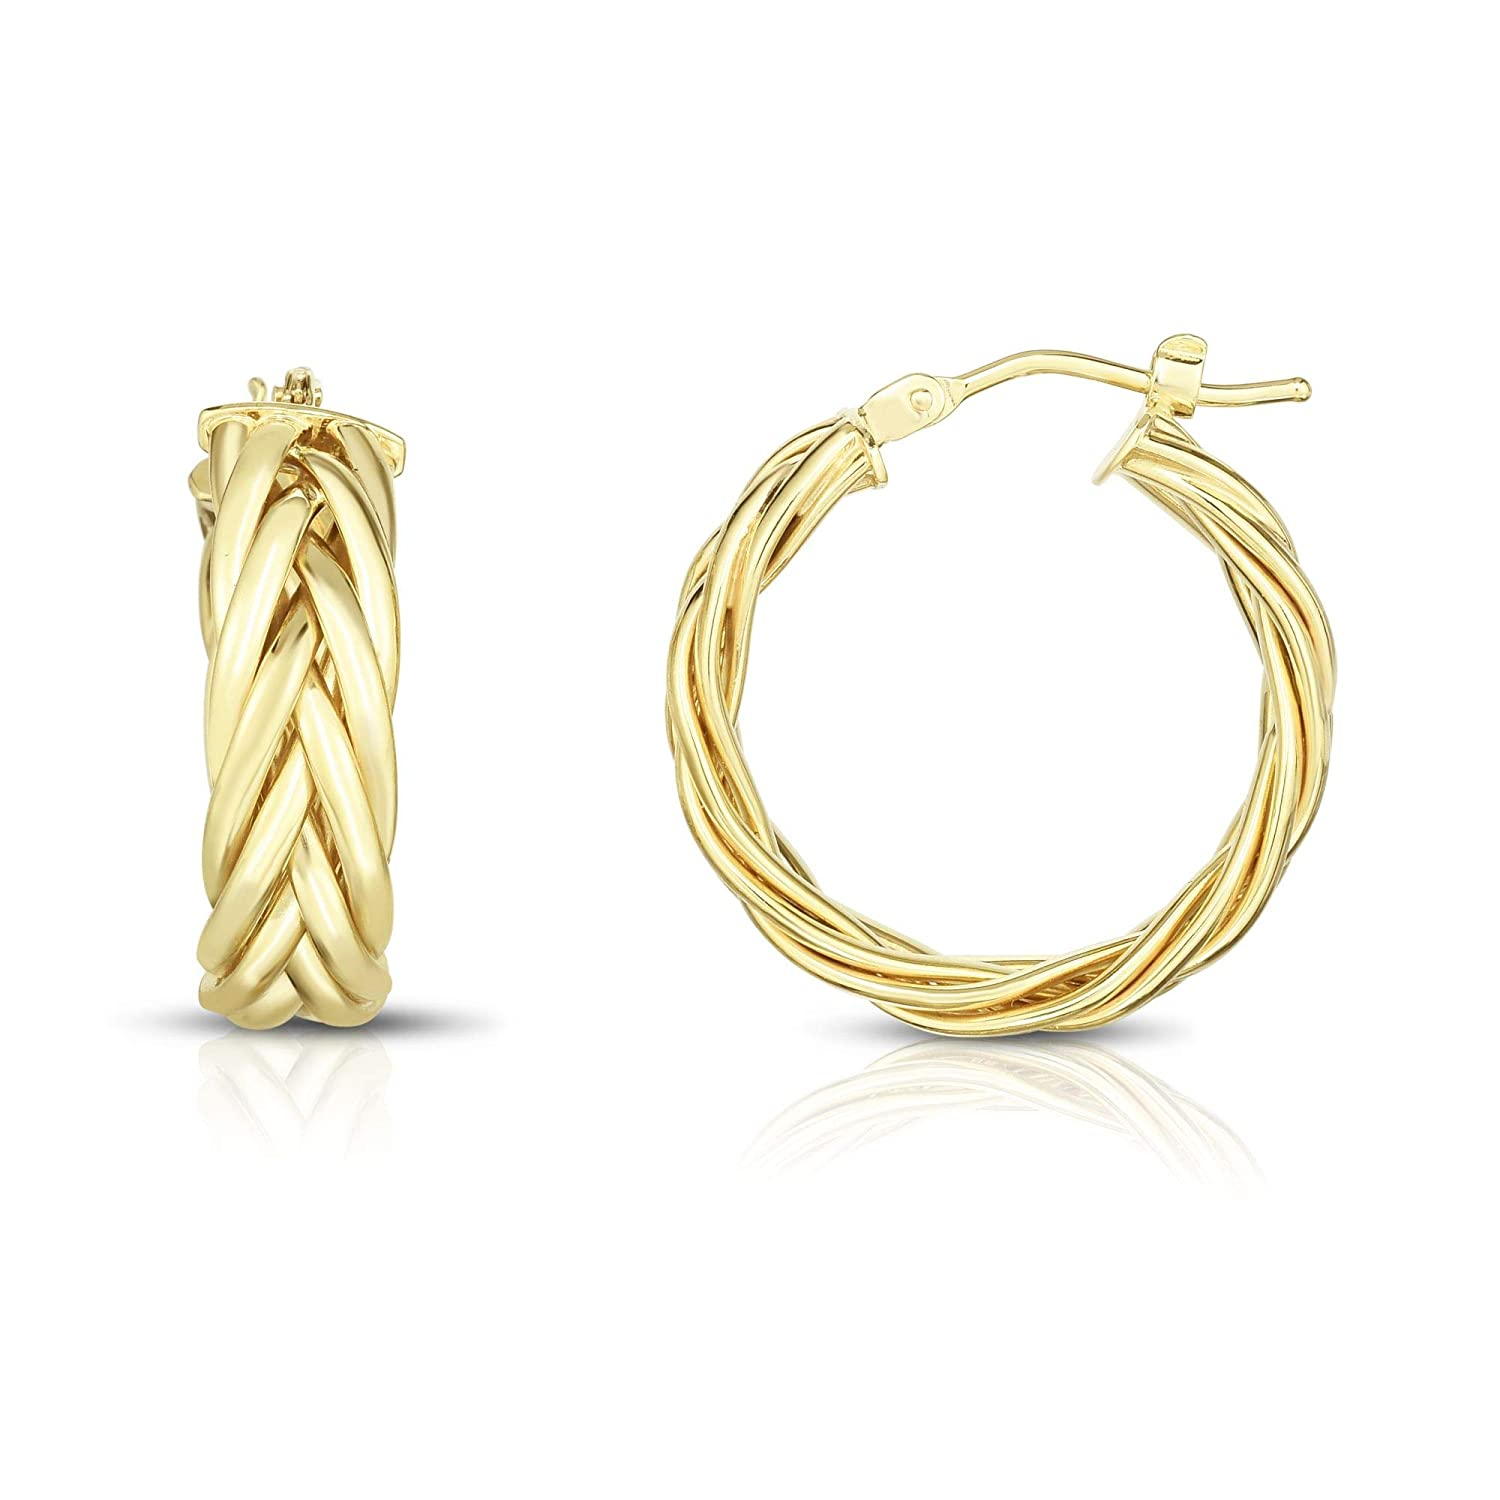 14K Yellow Gold Finish Shiny Round Hoop Fancy Earrings with Hinged by Icedtime